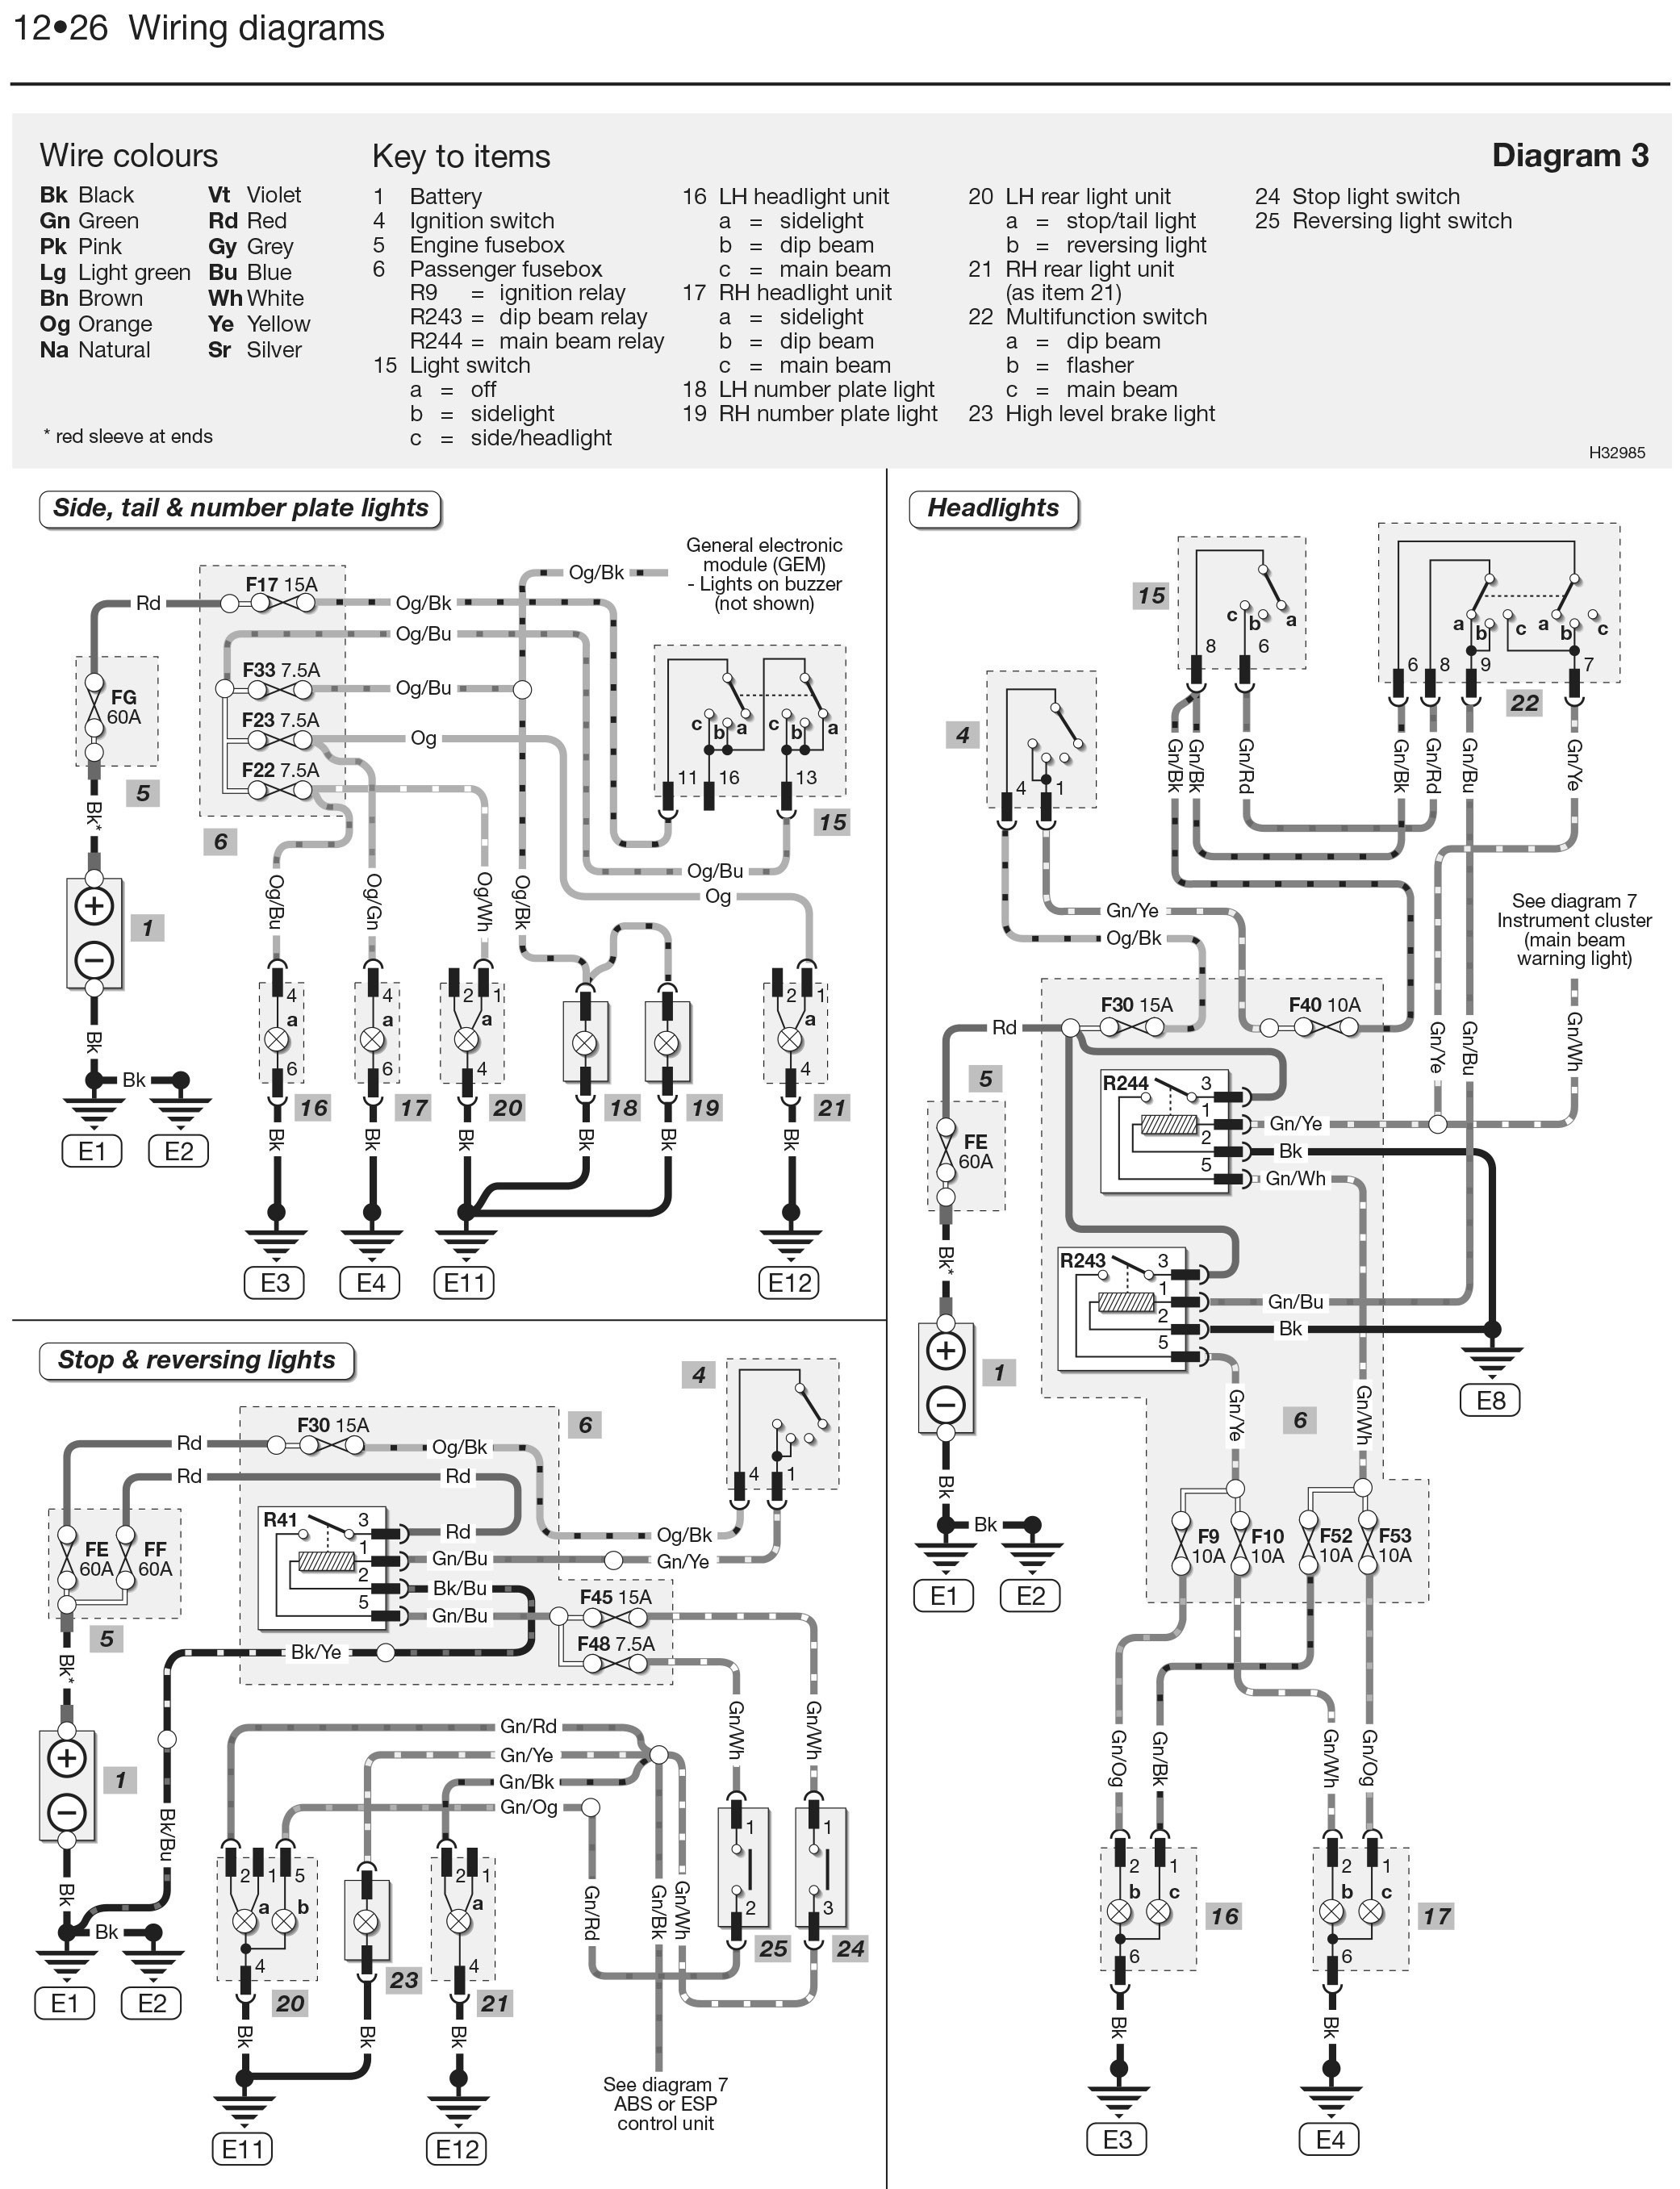 2003 ford F150 Engine Diagram 2011 ford Fiesta Engine Diagram Wiring Diagram  • Of 2003 ford